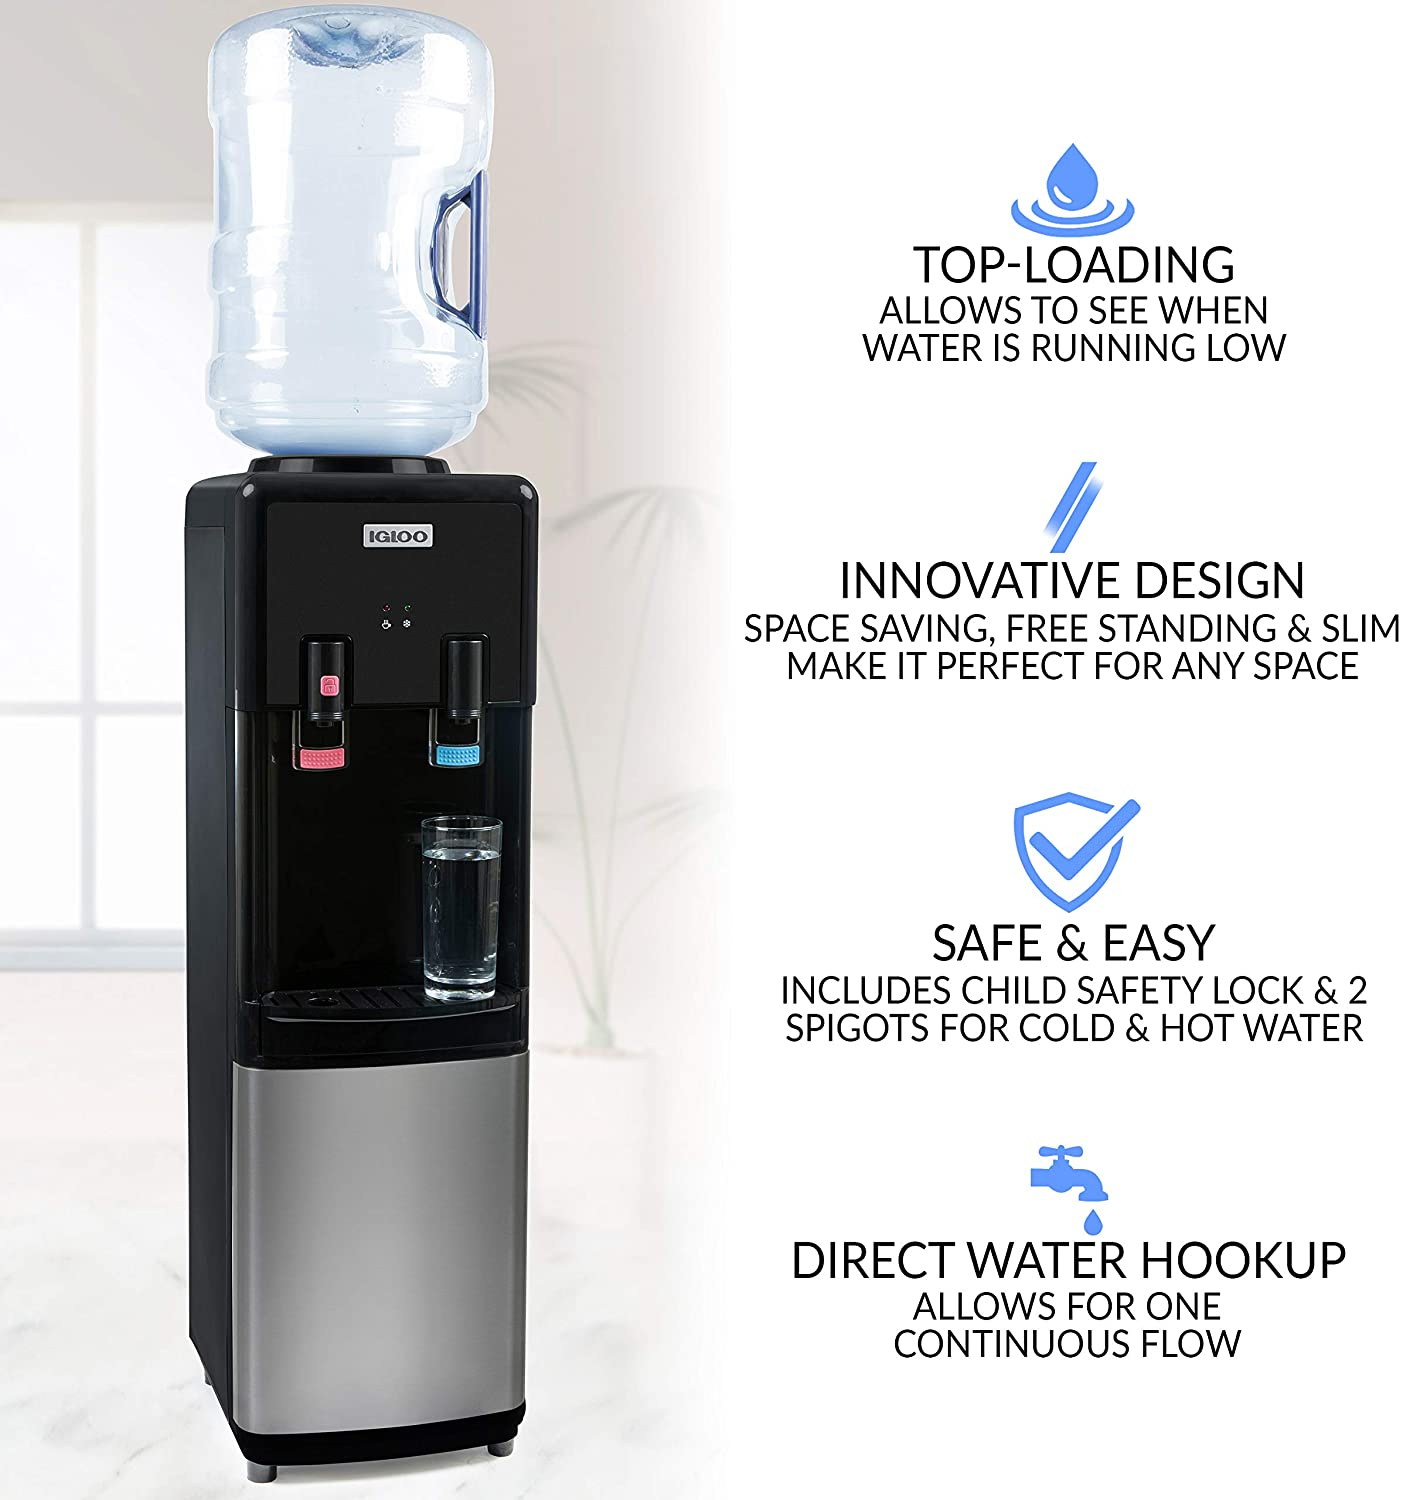 Igloo IWCTL352CHBKS Stainless Steel Hot & Cold Top-Loading Water Cooler Dispenser Specs